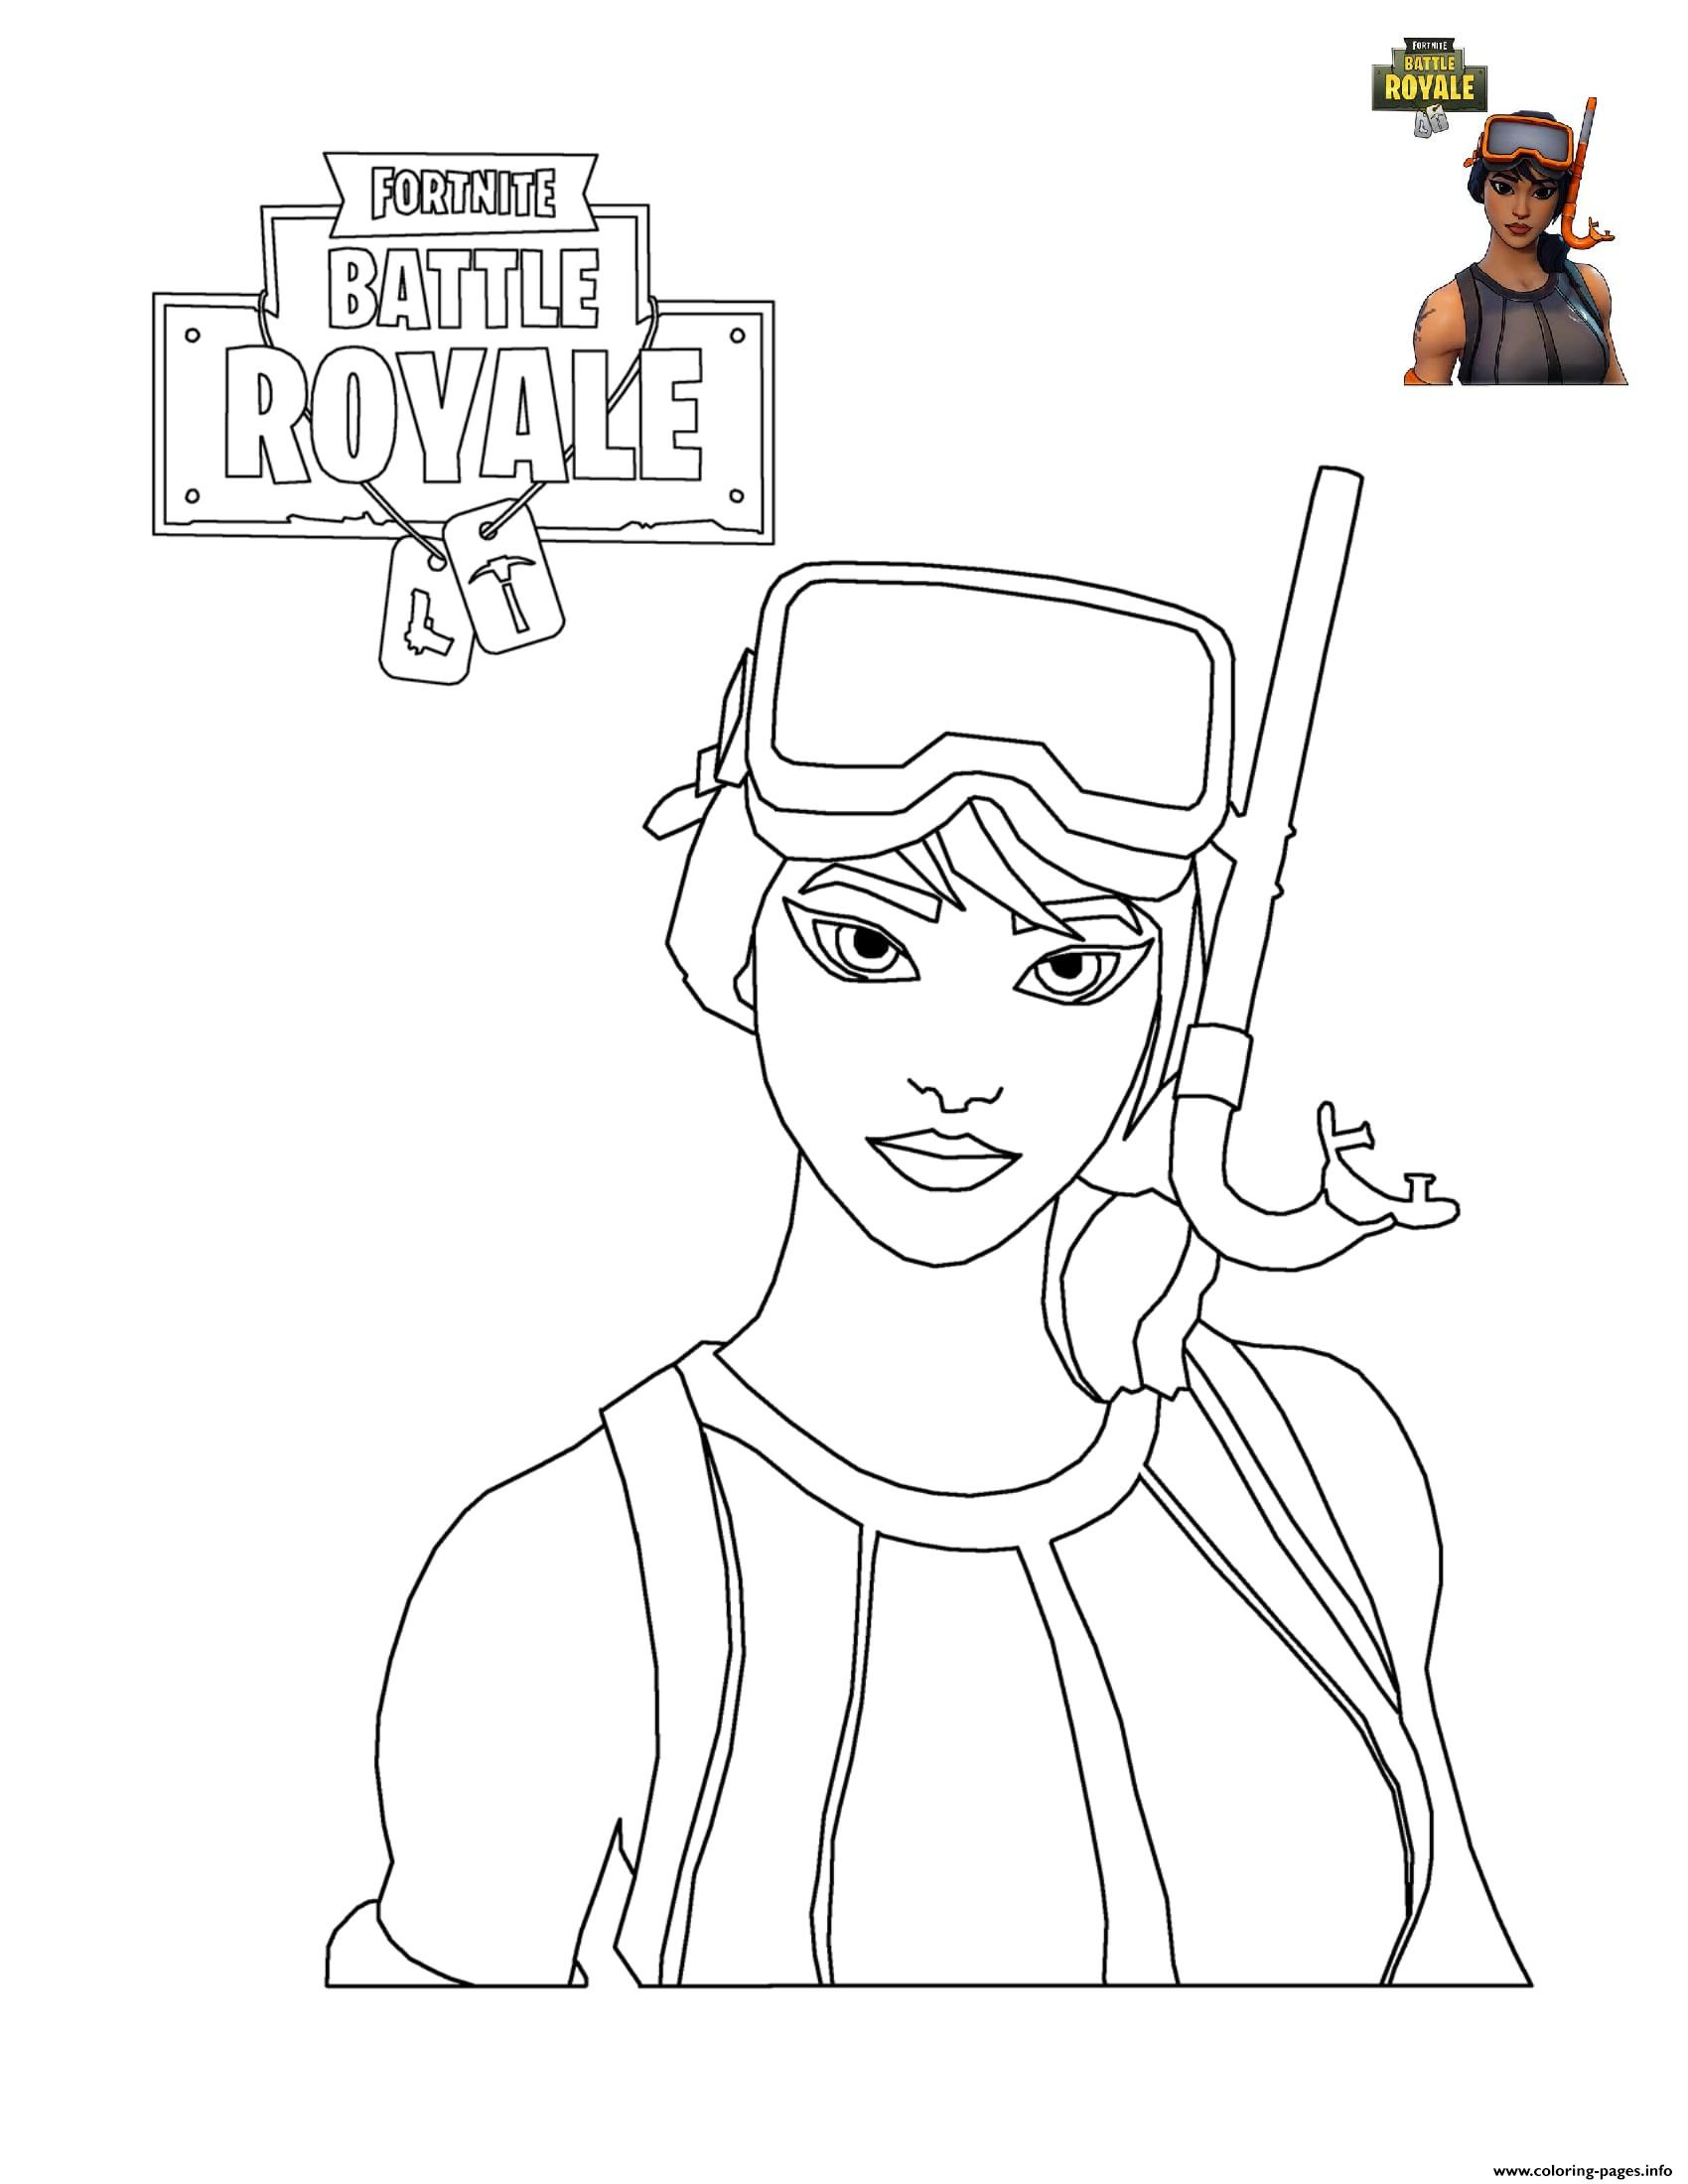 Fortnite Character 7 Coloring Pages Printable